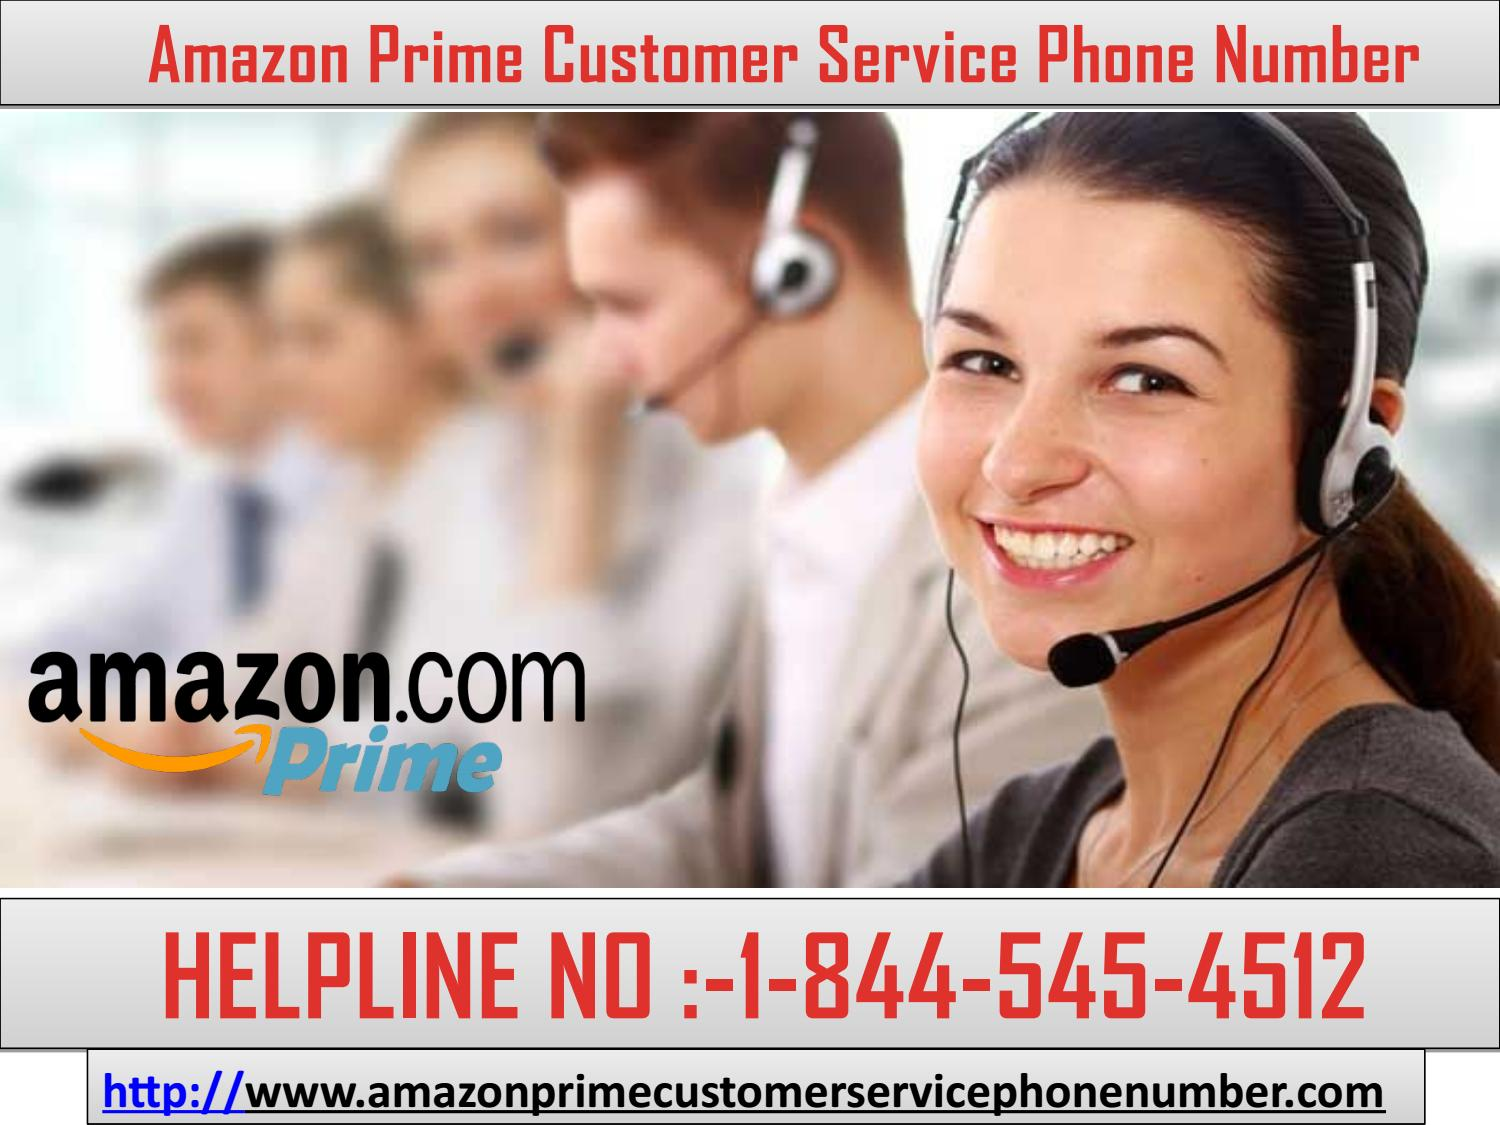 This Idea on Amazon Prime Customer Service Phone Number 1-844-545-4512 by devidwatson1995 - Issuu